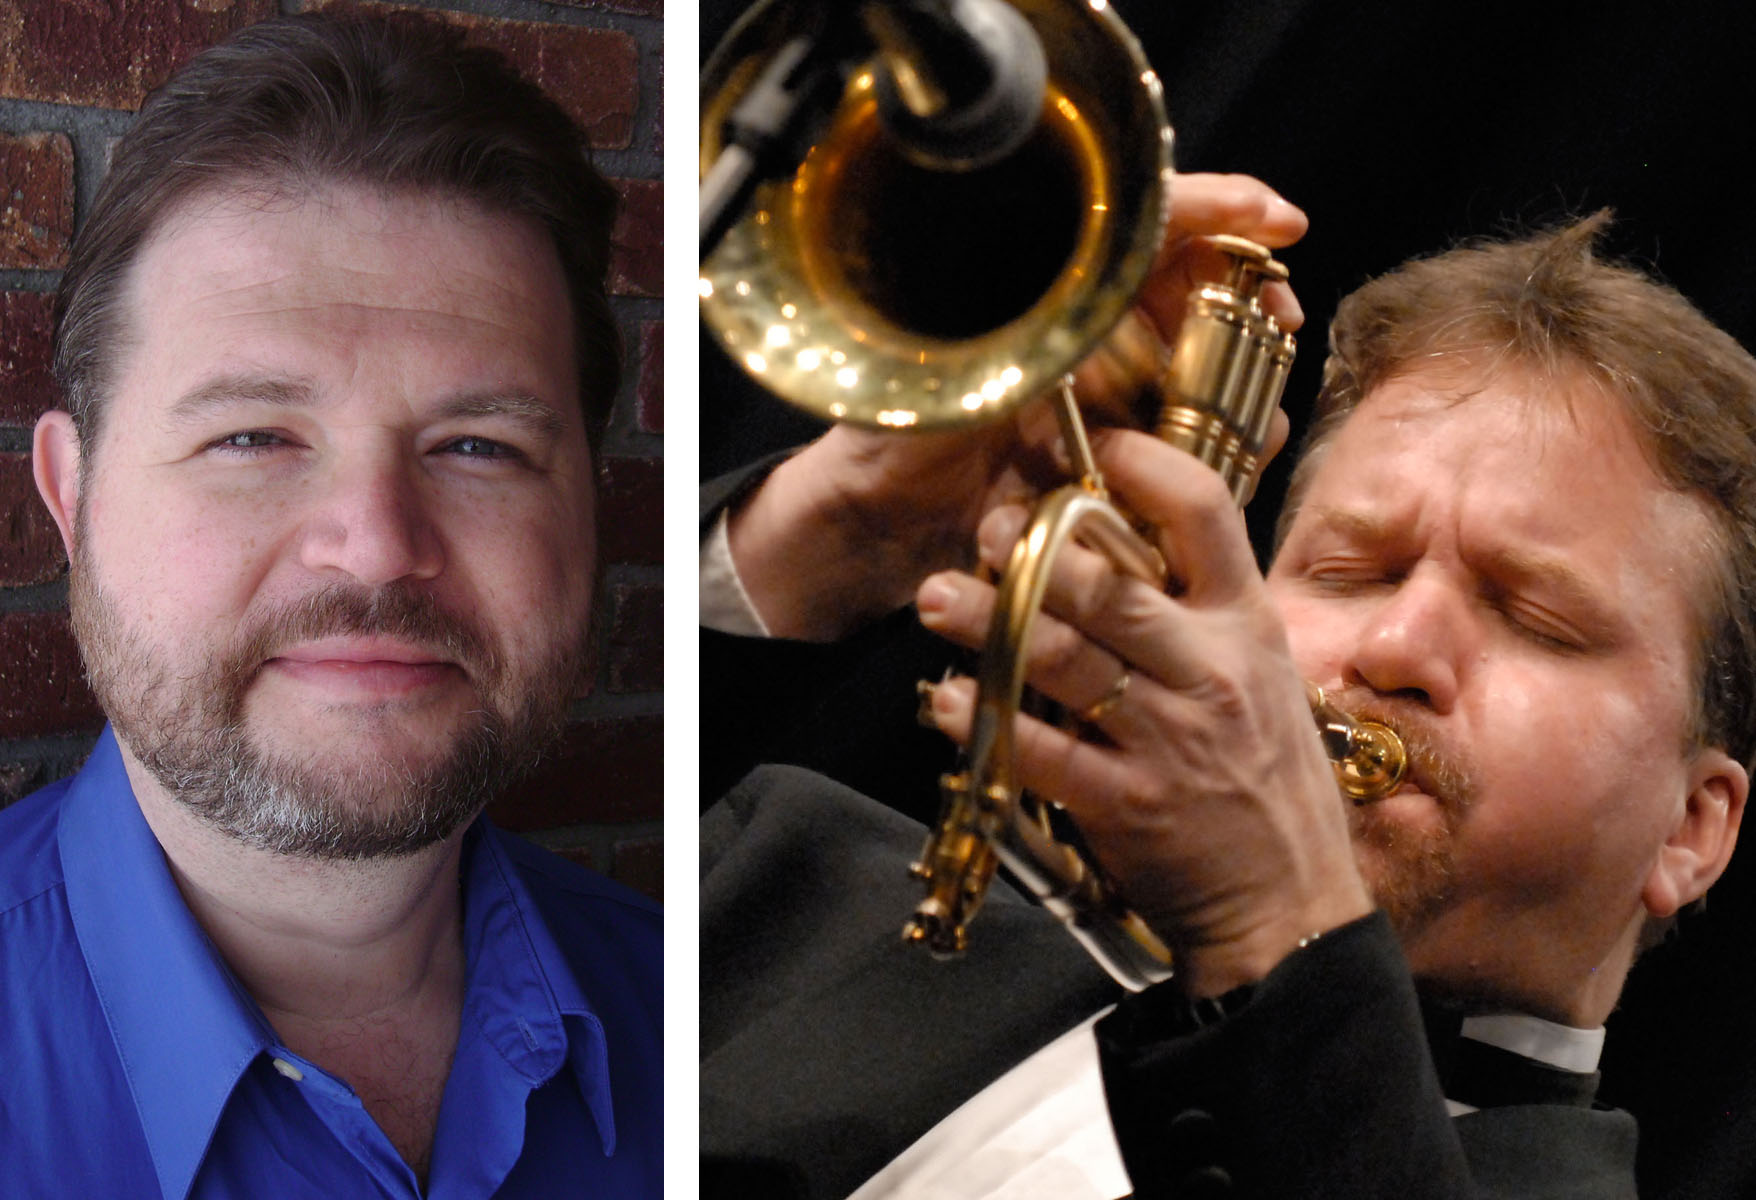 (From left) Eric Richards, assistant professor of composition and jazz studies, and Rob Parton, leader of the Rob Parton Big Band.